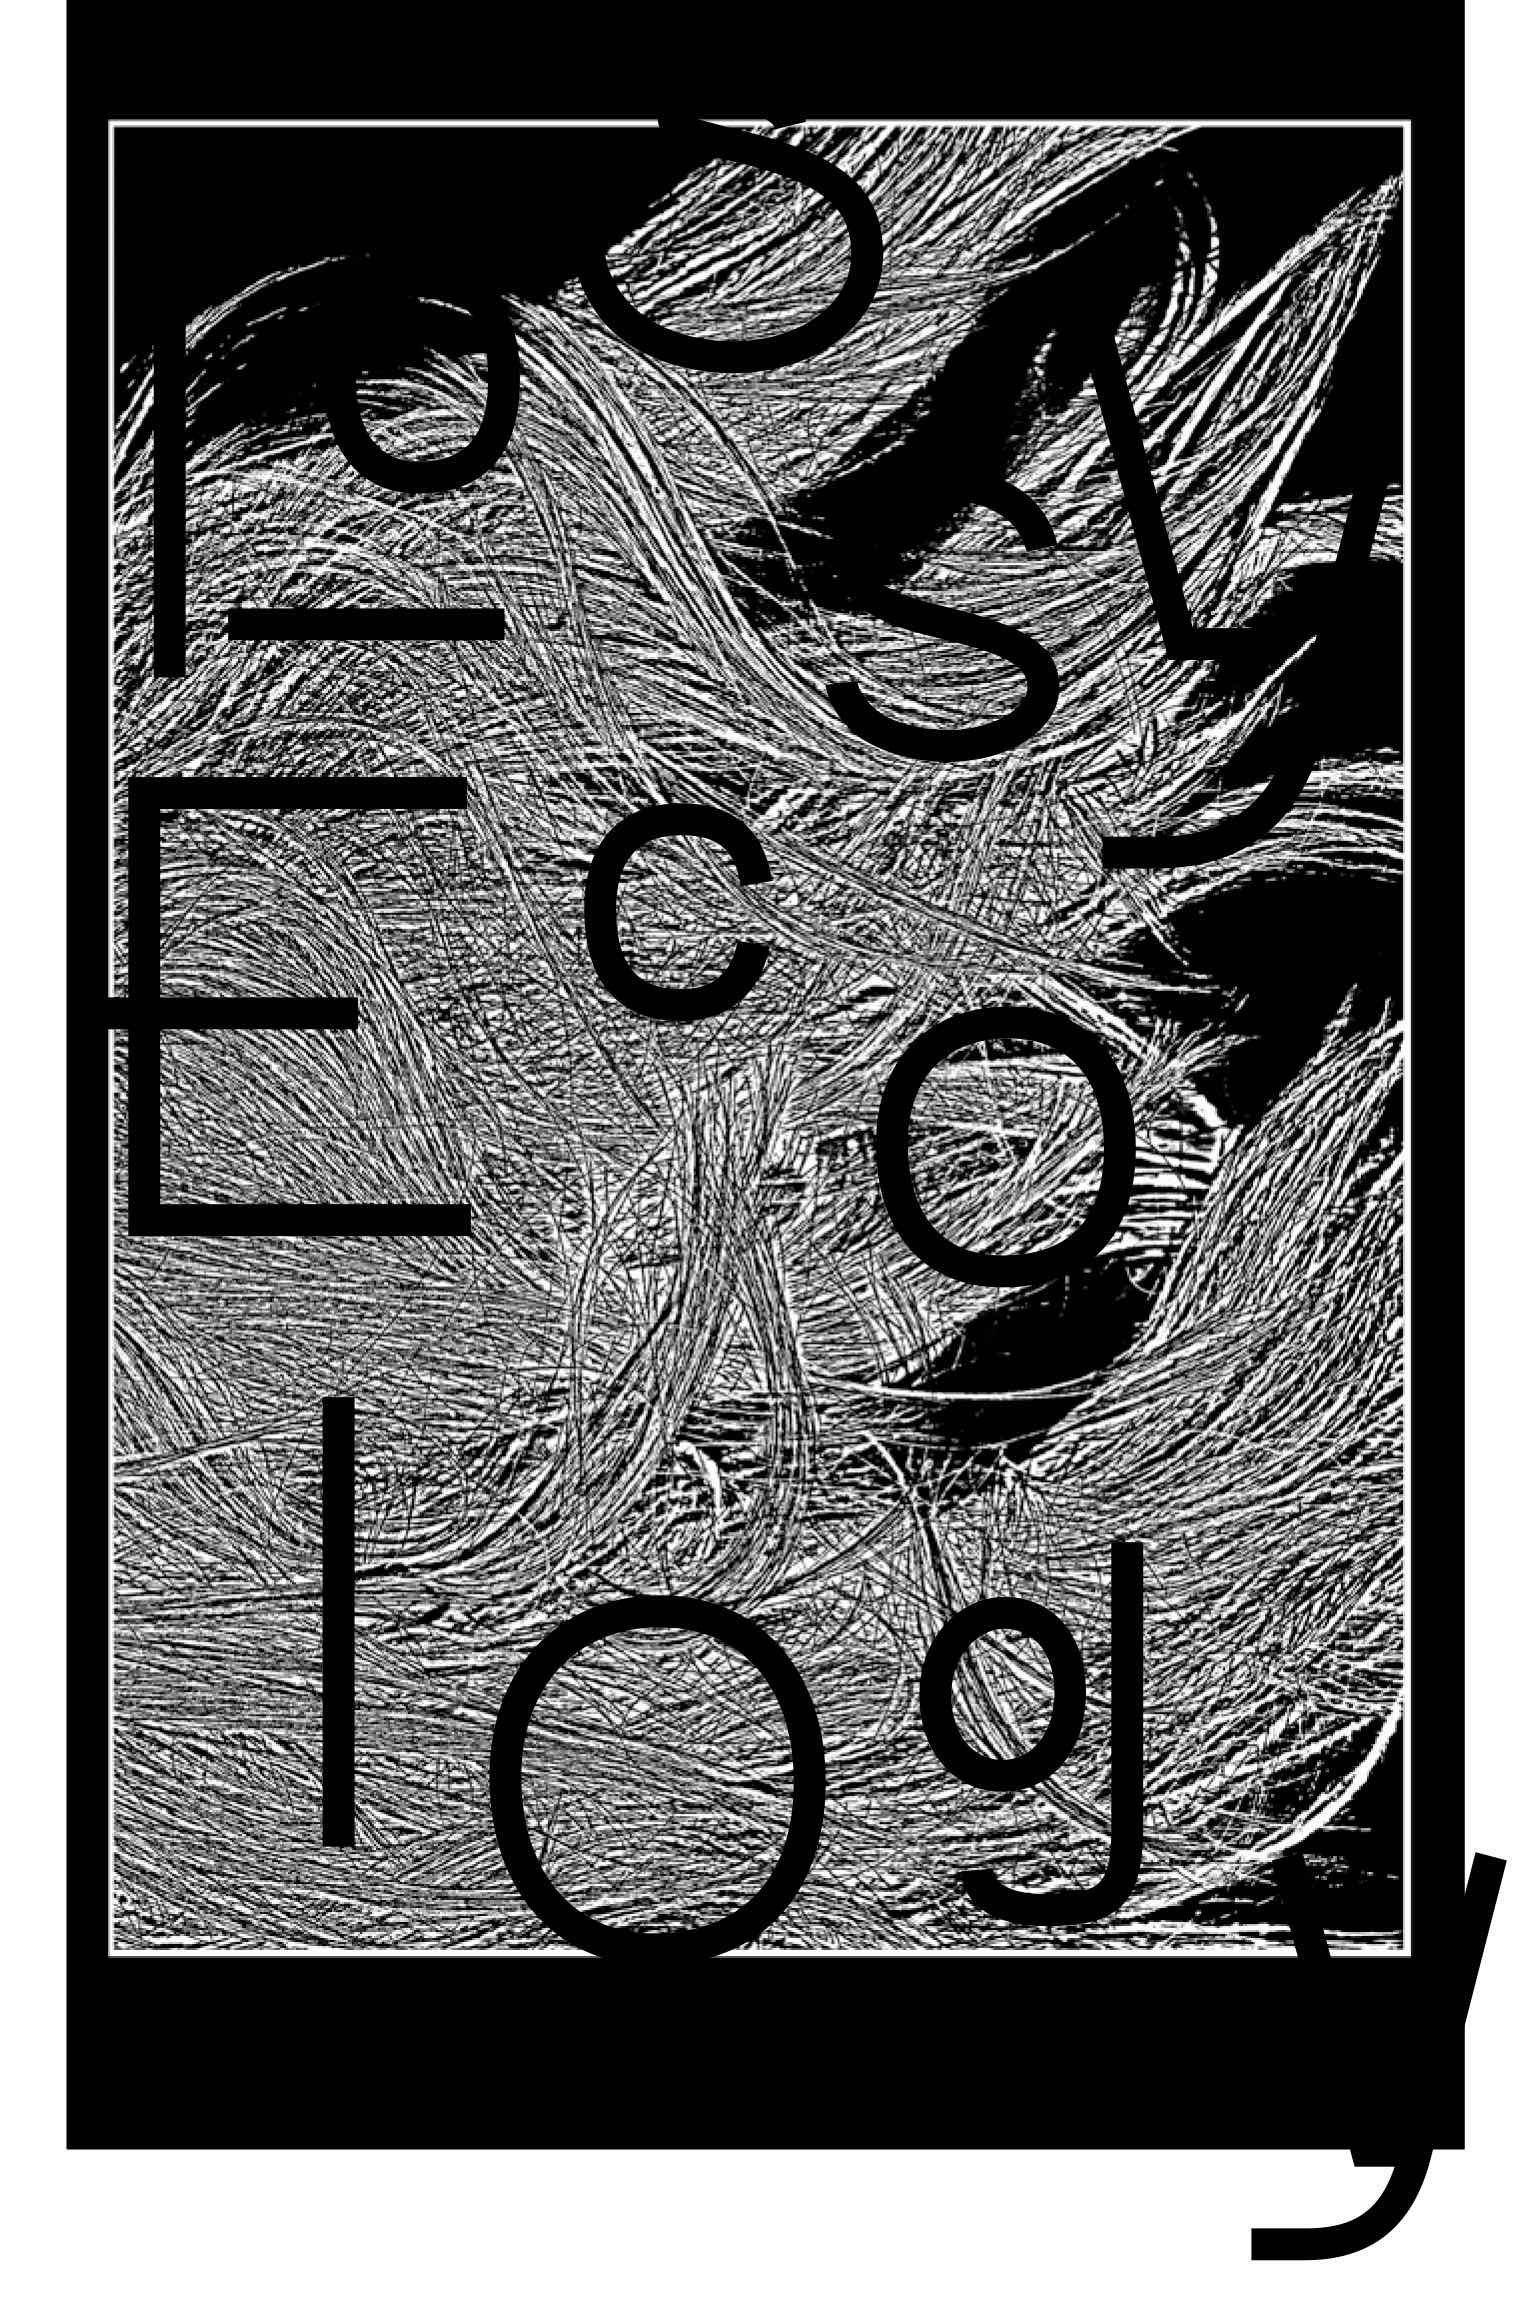 Lossy Ecology edited by Louisa Martin (Living Sculpture 2)